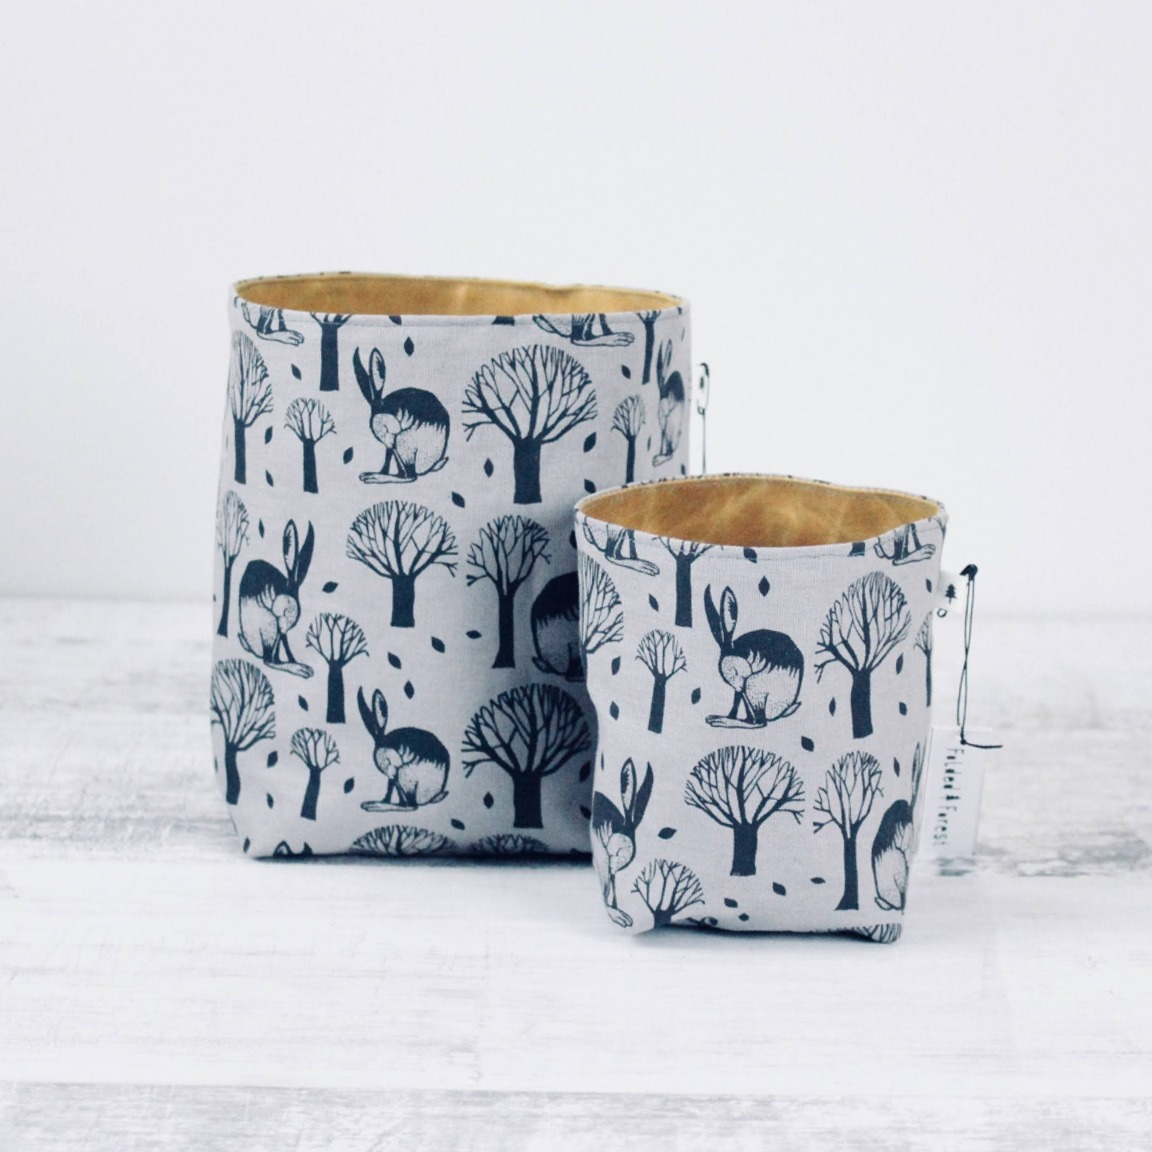 Screen Printed Fabric Containers - Sleeping Hare